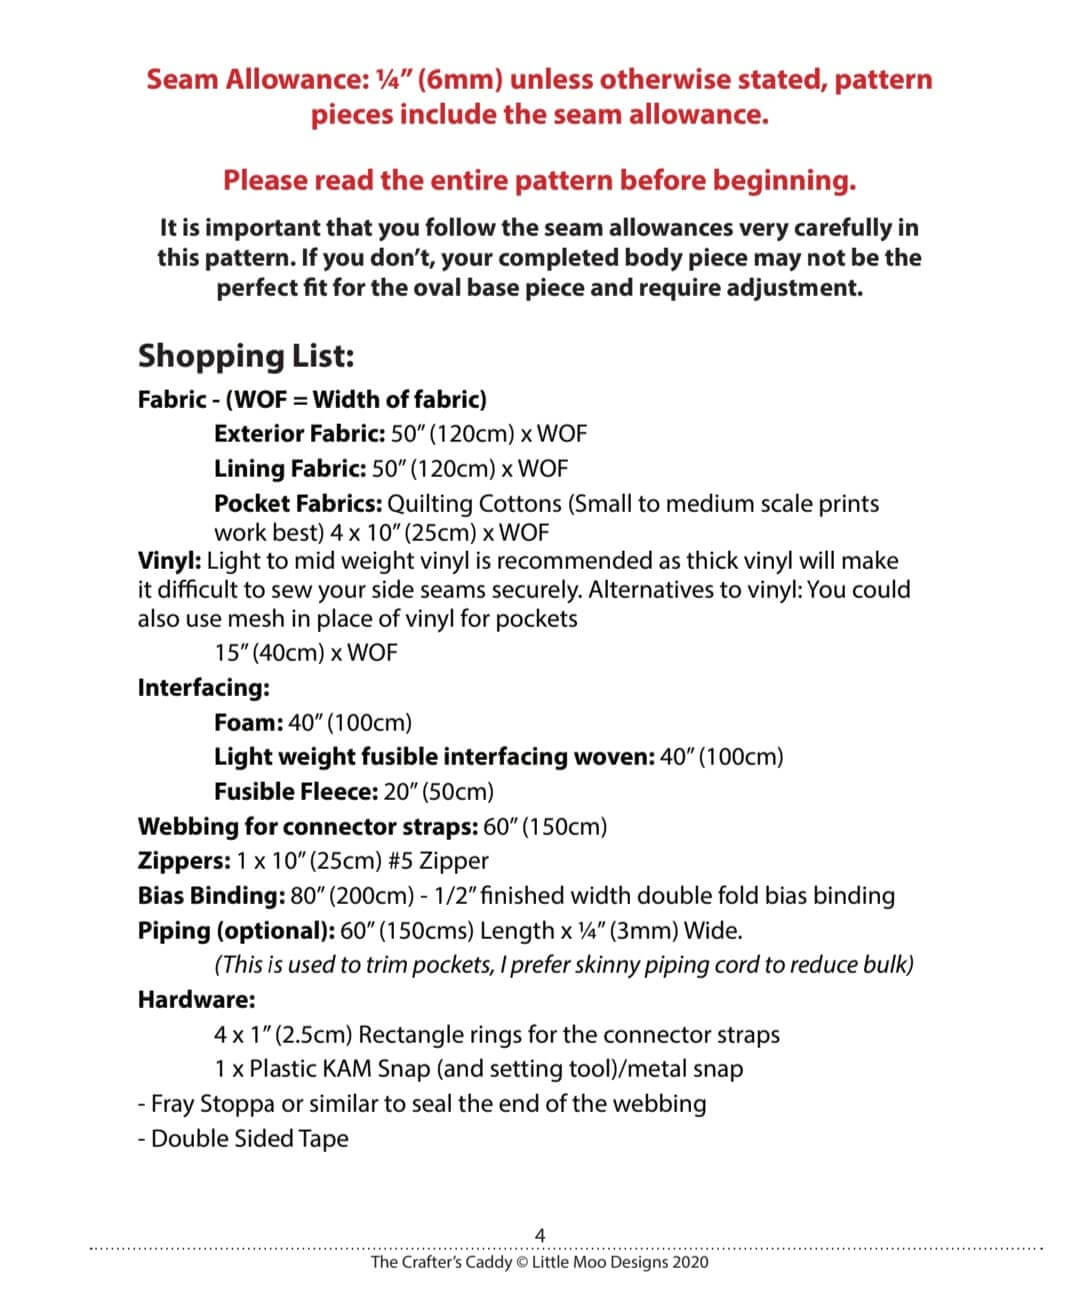 Requirements List The Crafter's Caddy